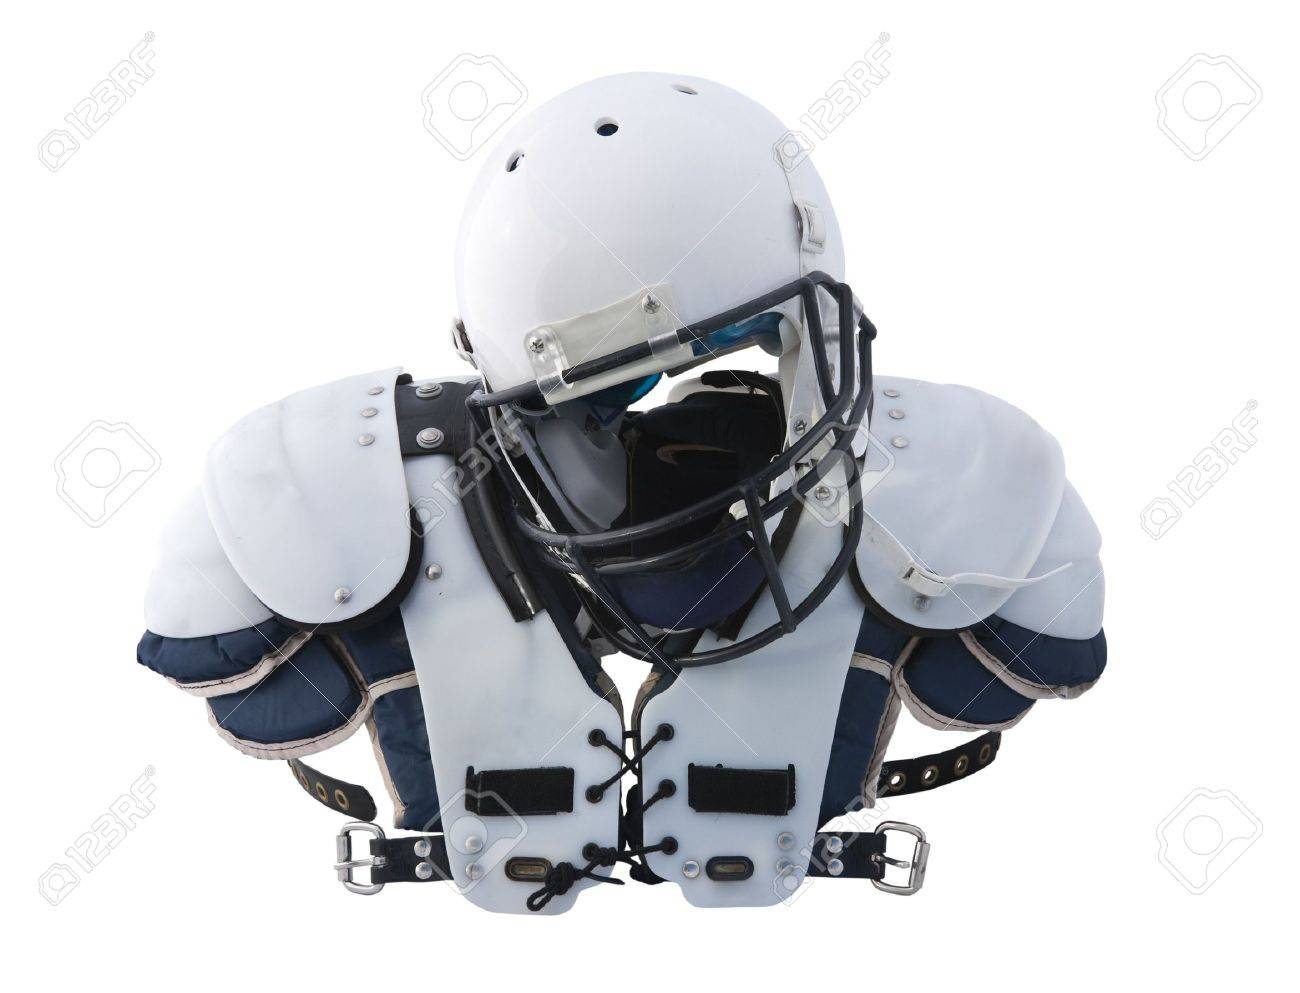 6152337-football-helmet-and-shoulder-pad